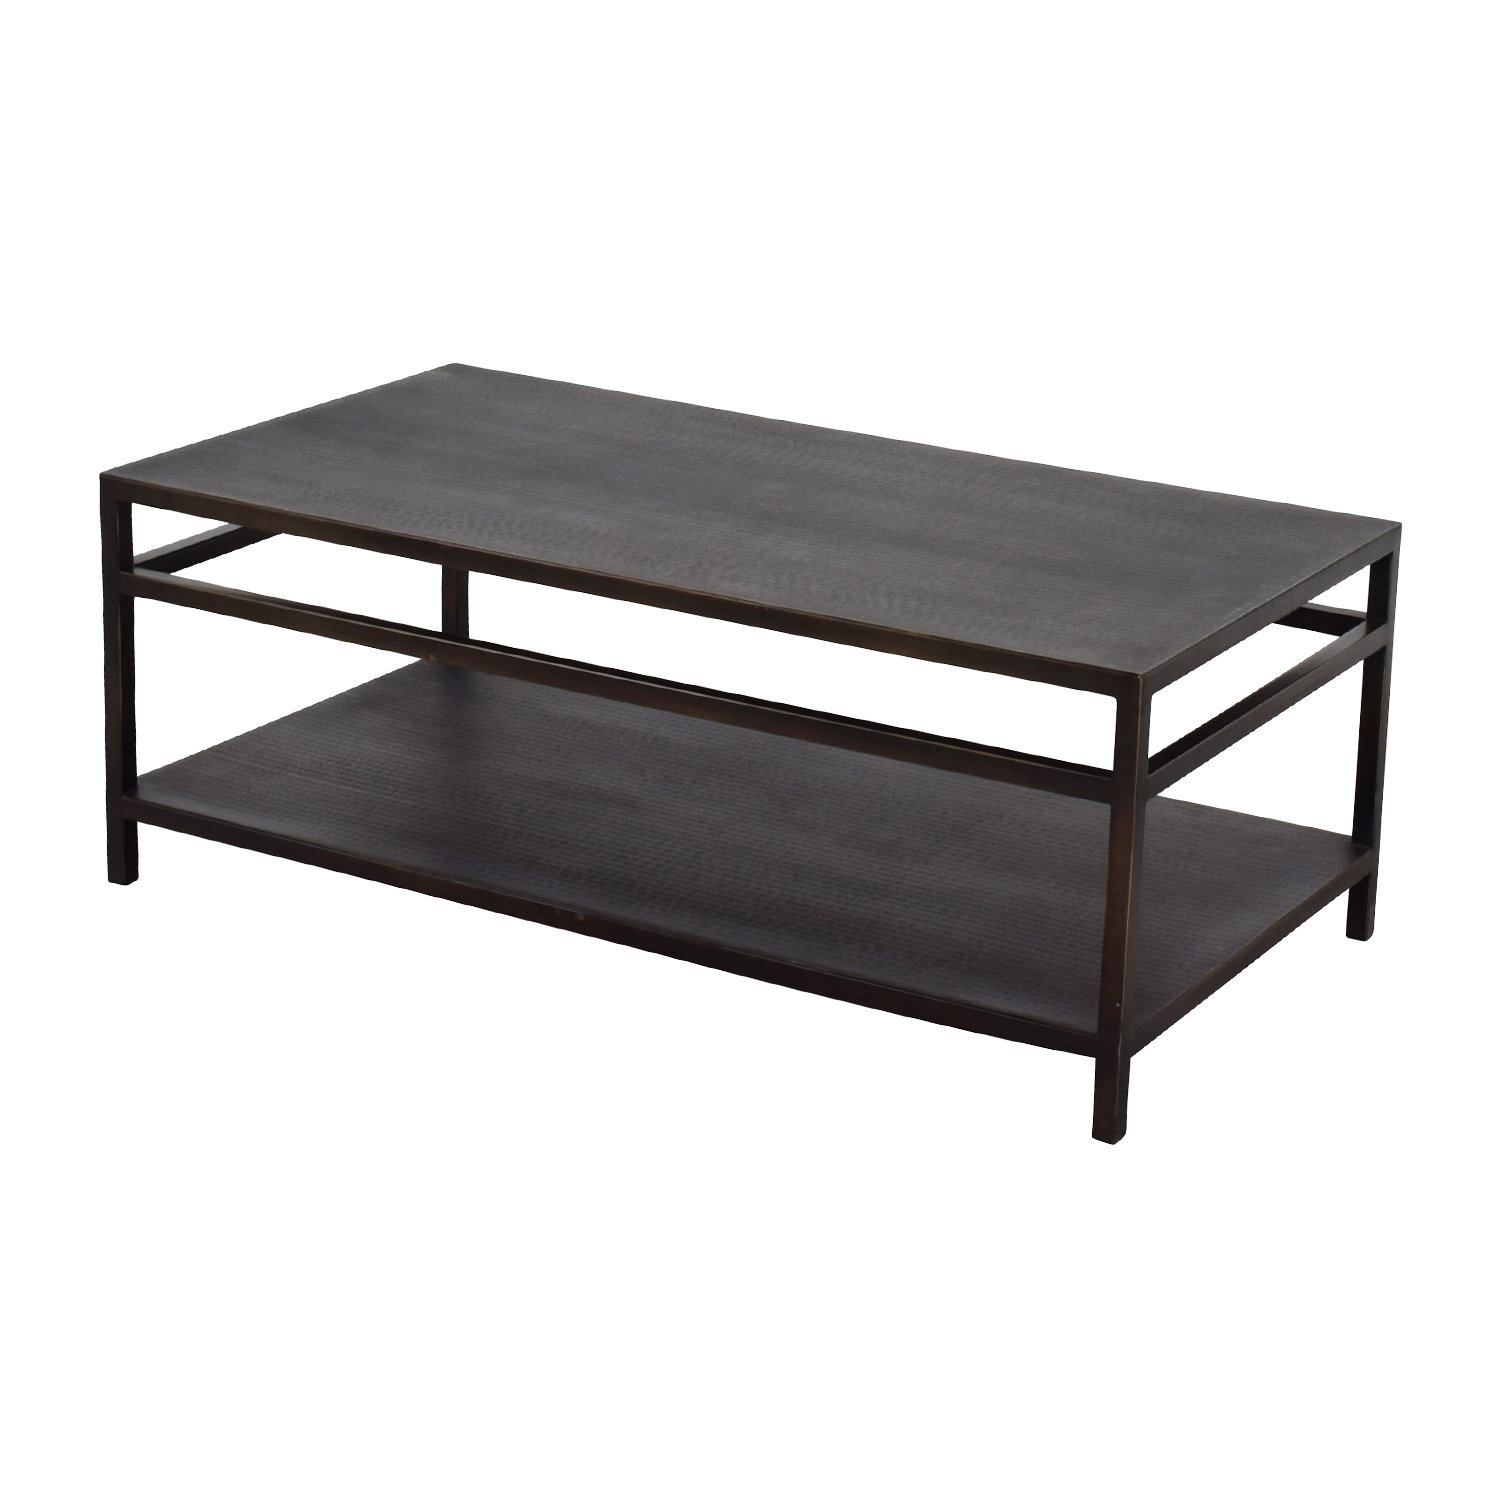 90 off bloomingdales black modern metal coffee table tables. Black Bedroom Furniture Sets. Home Design Ideas